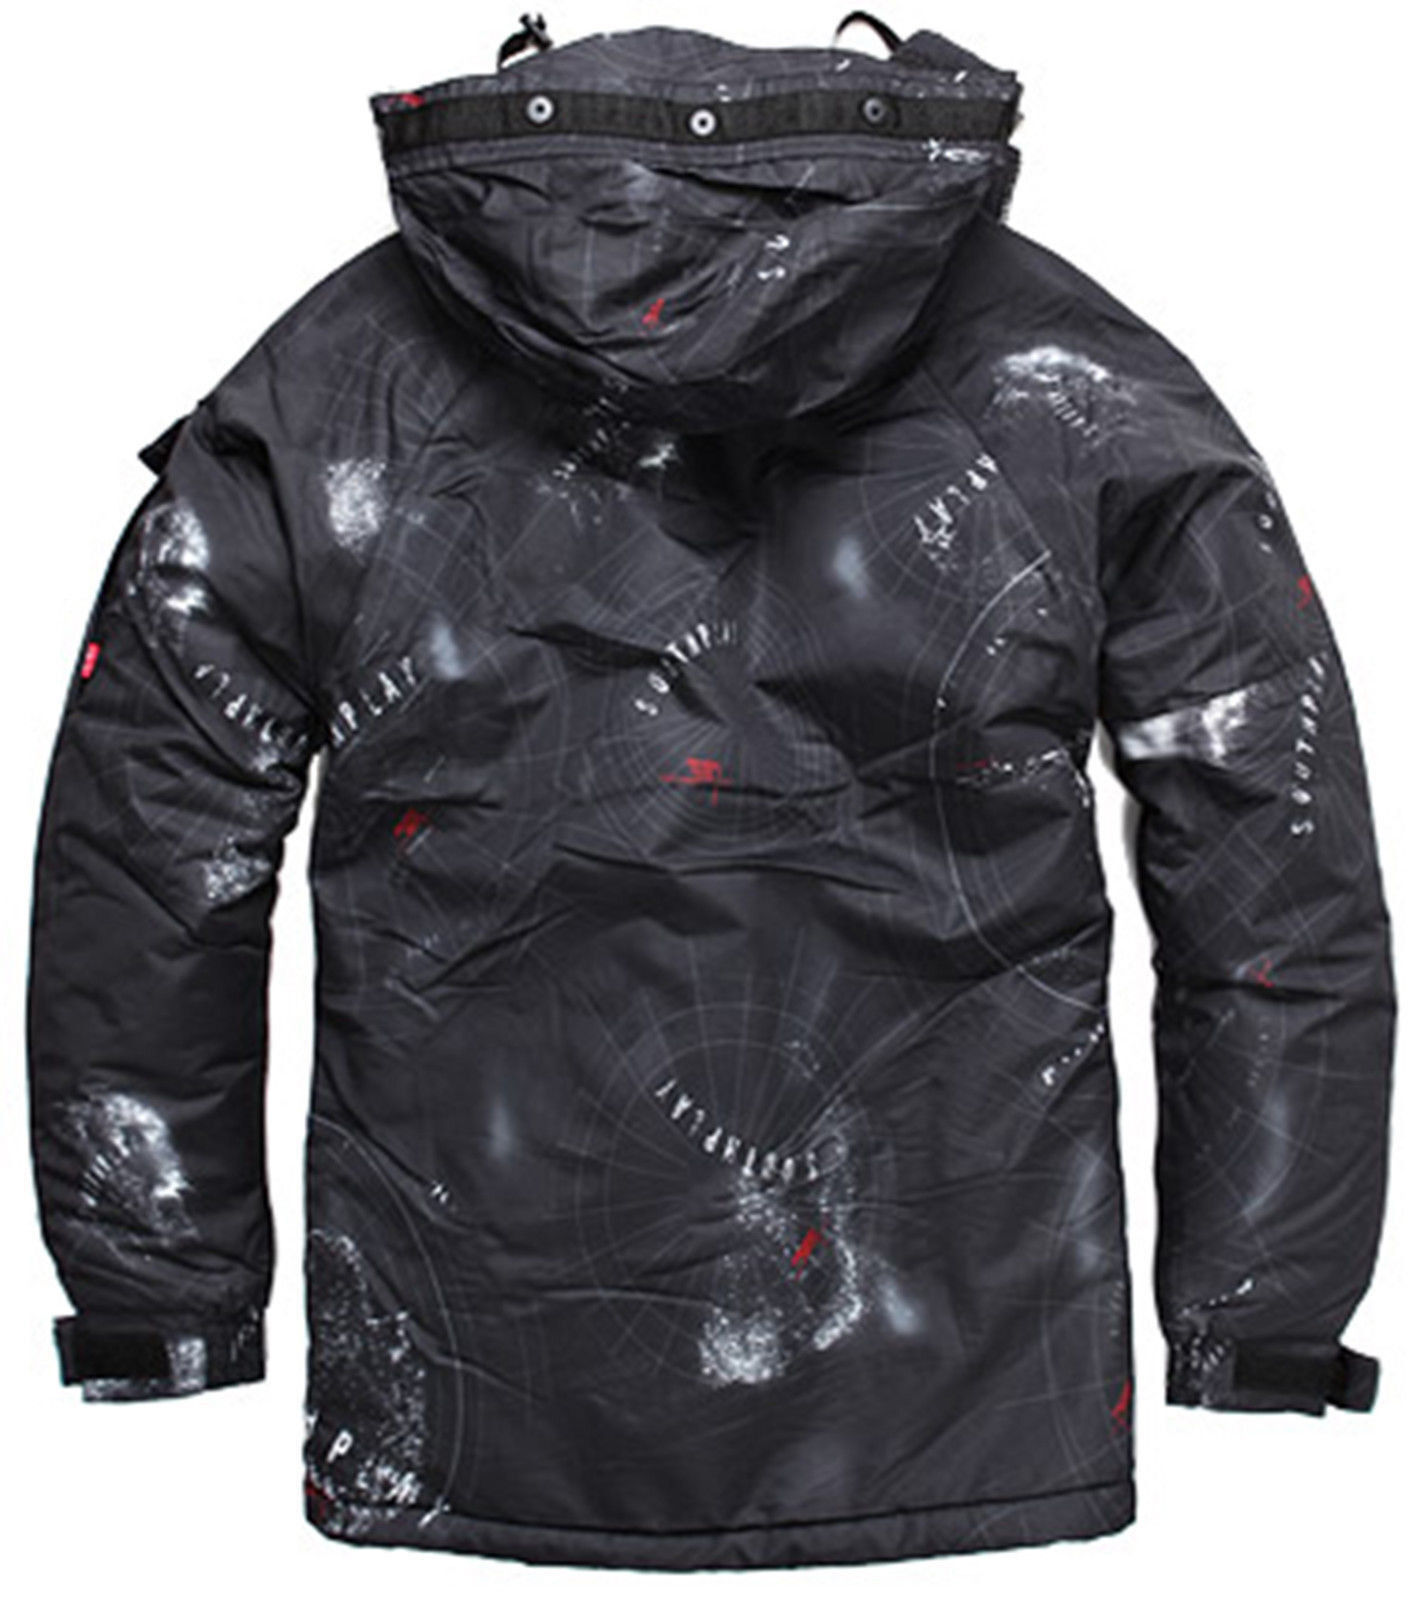 2019 2019 2019 SouthPlay Military Gemusterte Wasserdichte Oberbekleidung Jacke Space 291a0c